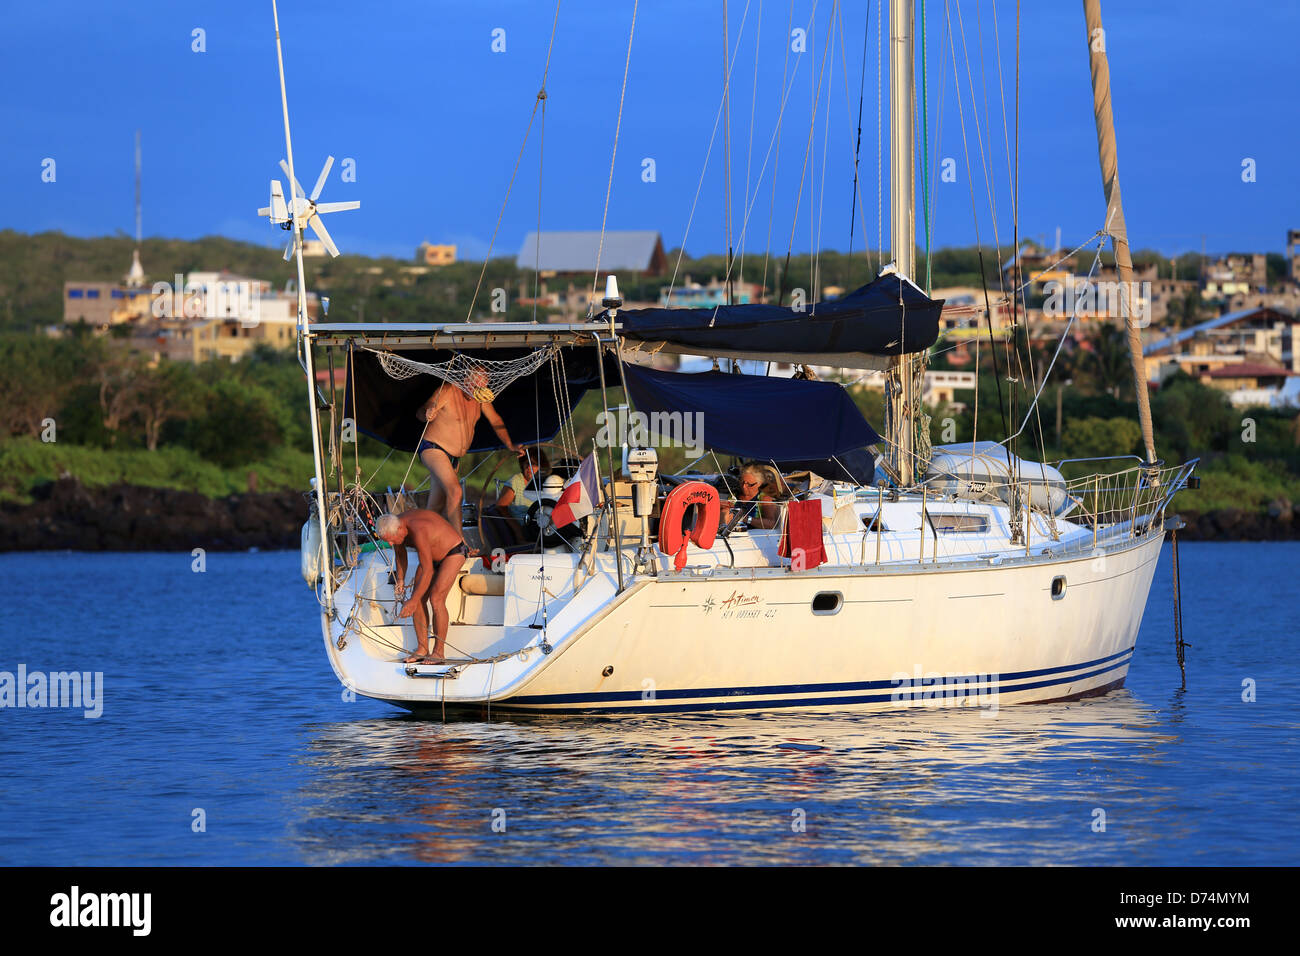 Private yacht moored in Puerto Baquerizo Moreno, Galapagos Islands - Stock Image